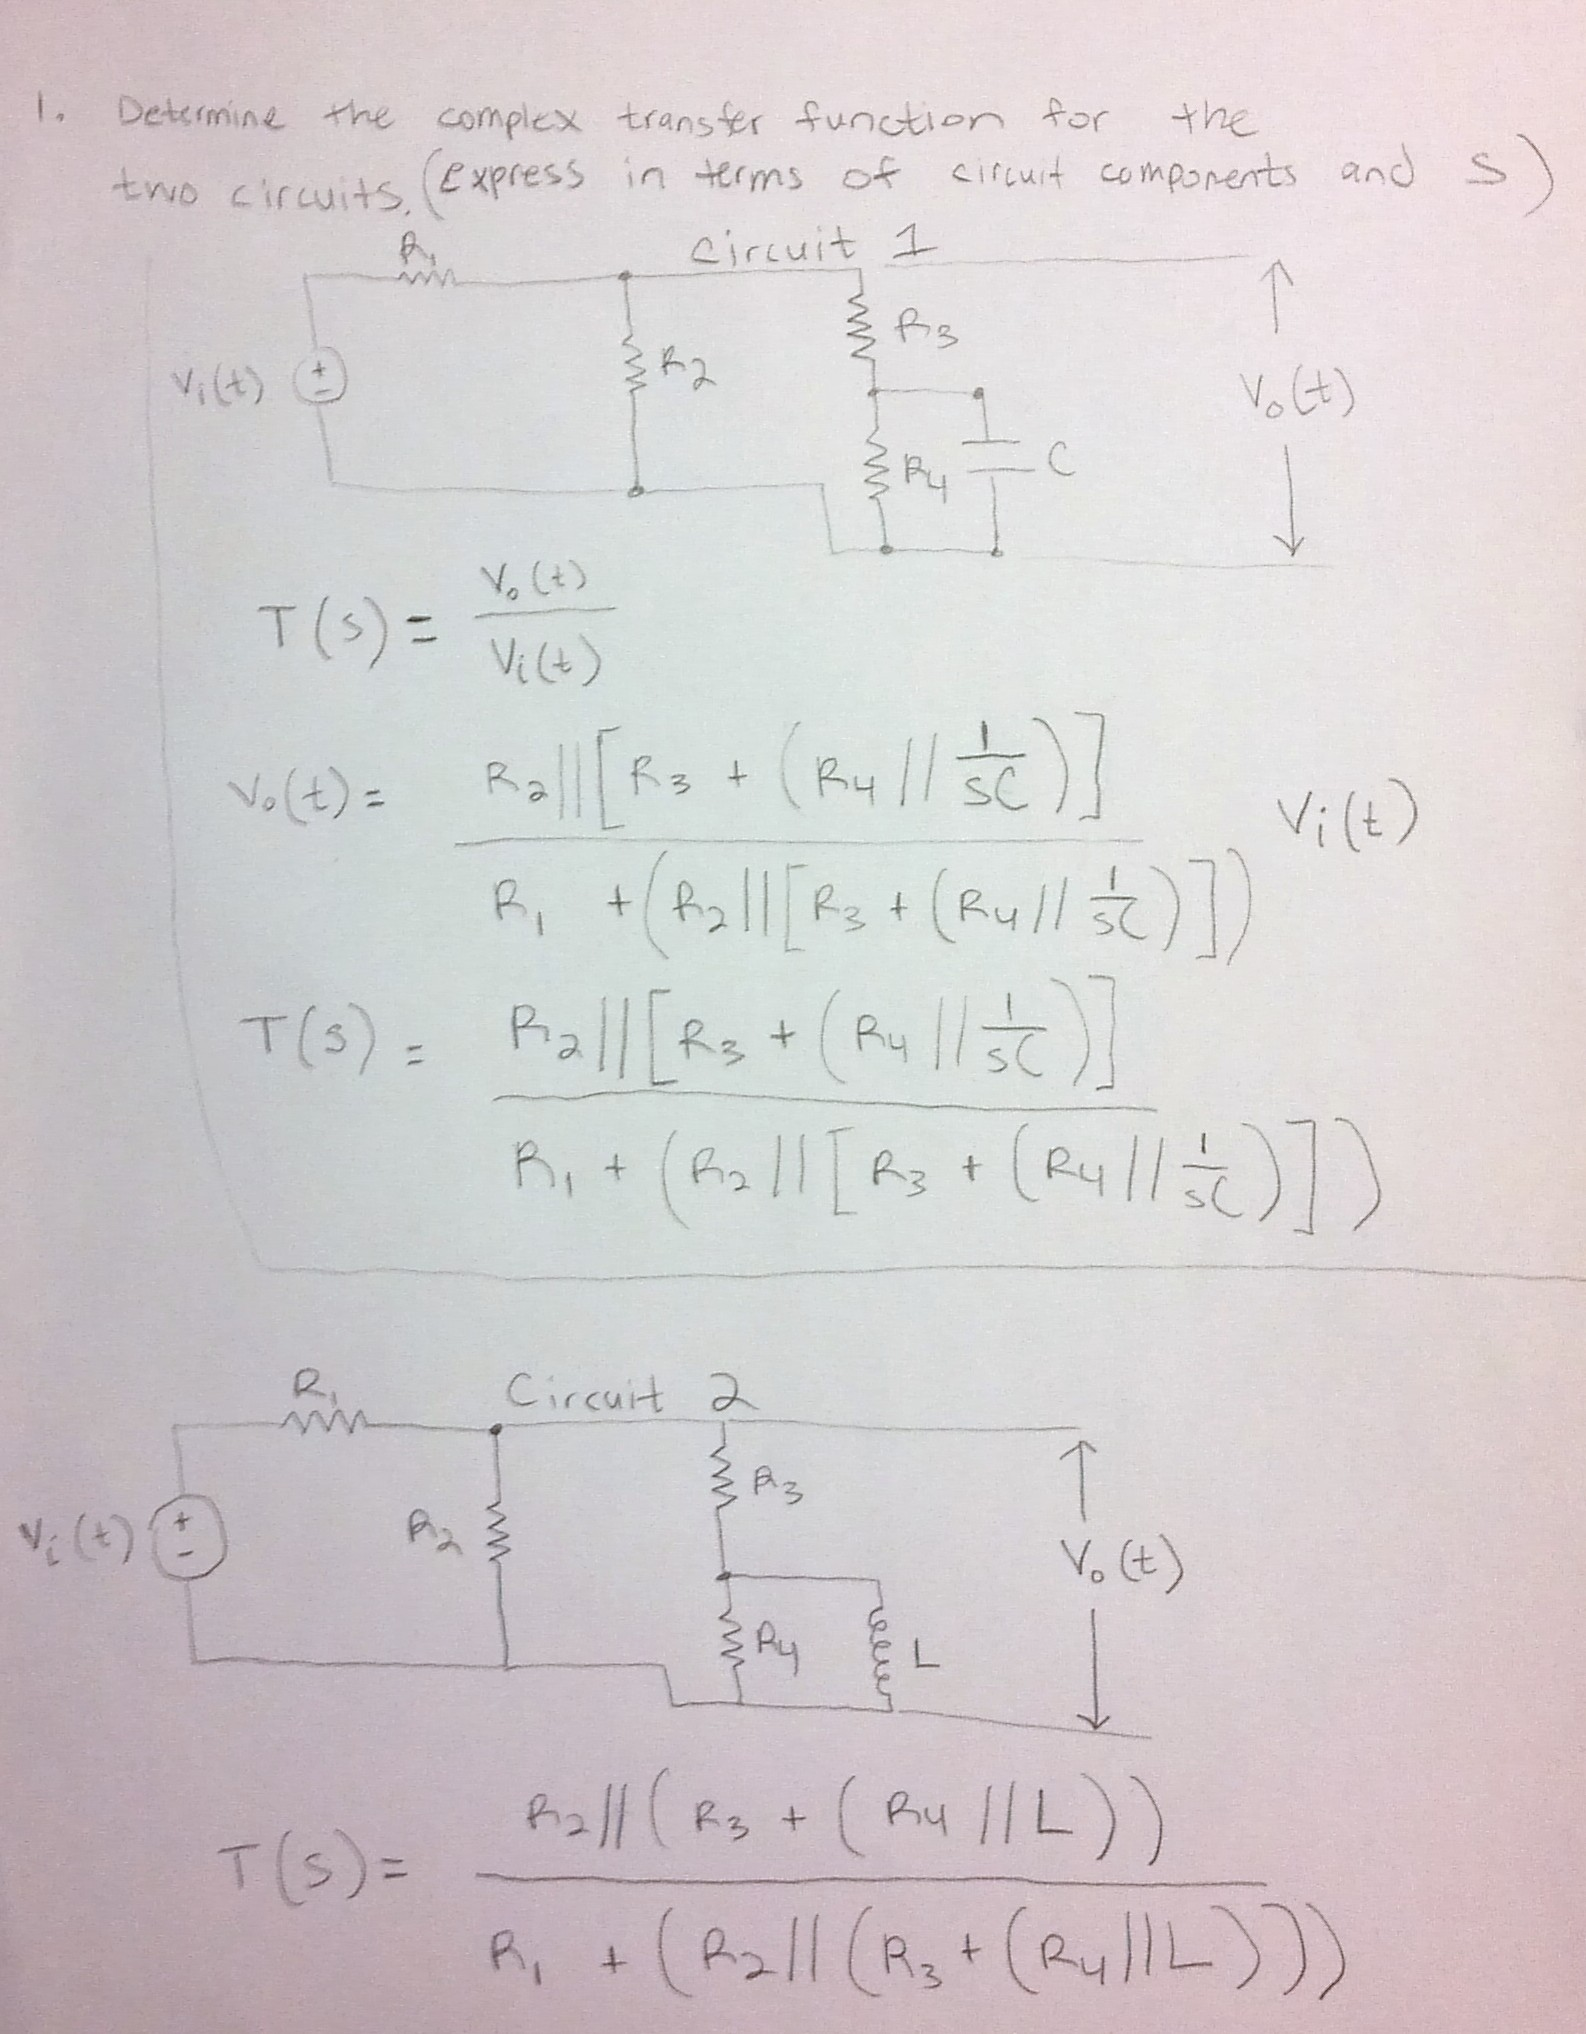 Determine the complex transfer function for the Tw